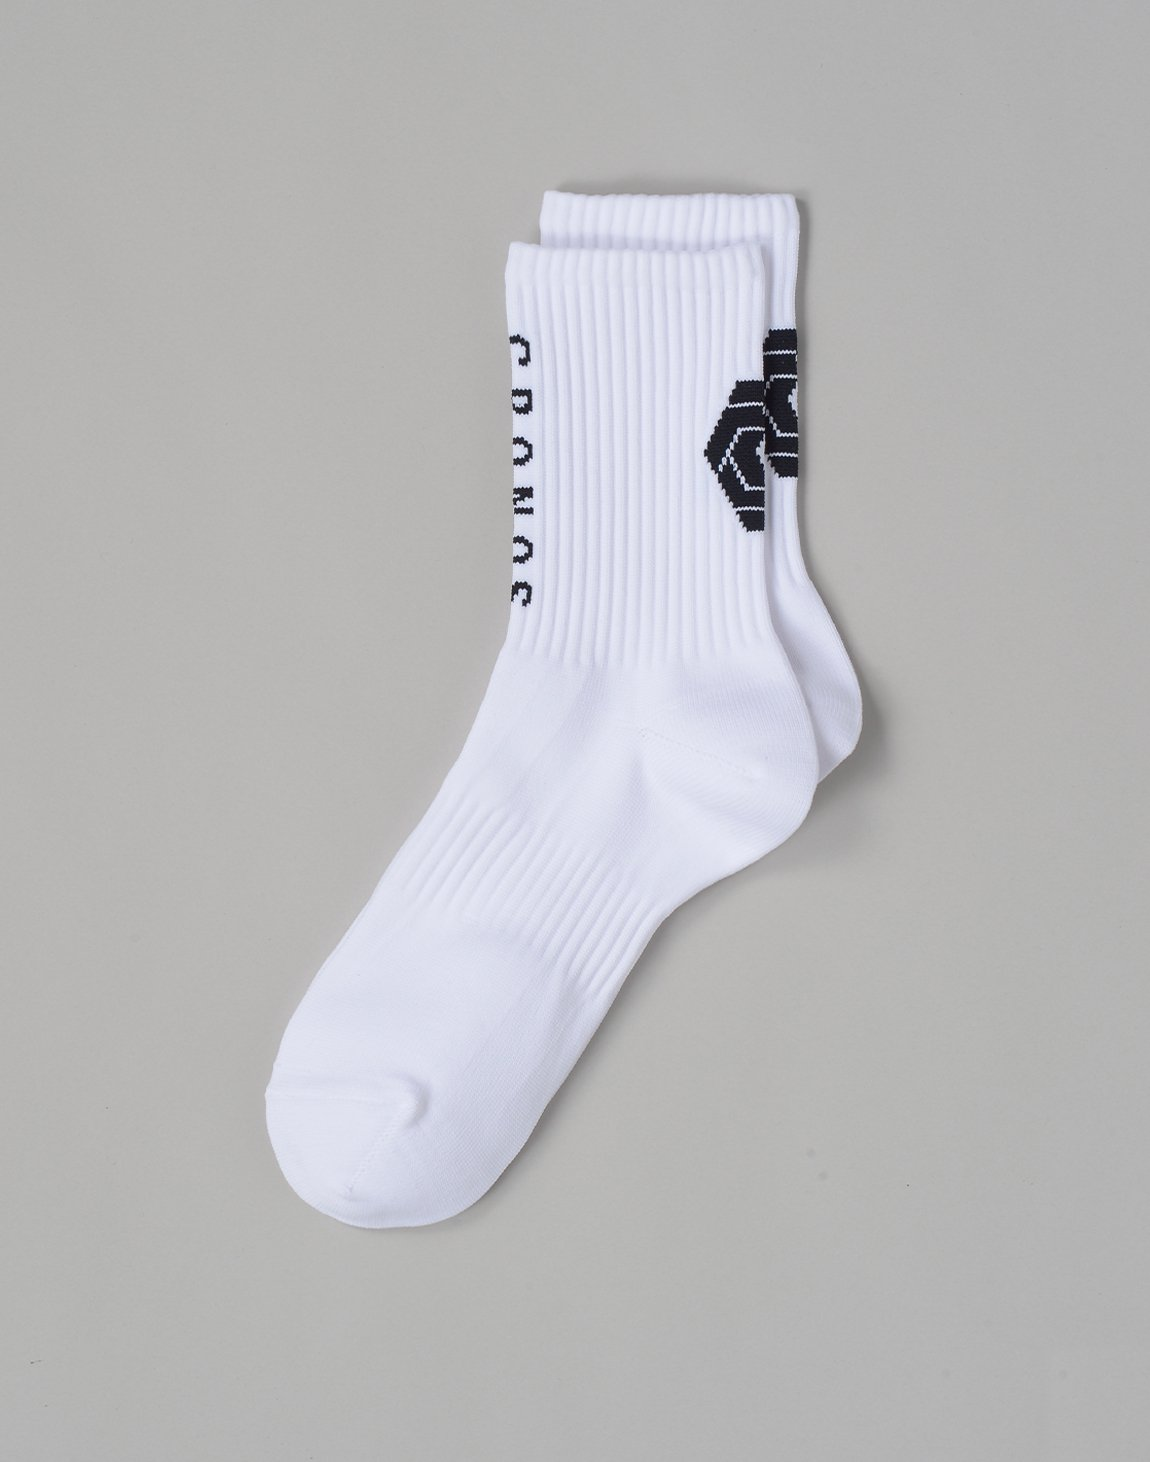 CRONOS BACKLOGO SOCKS【WHITE】